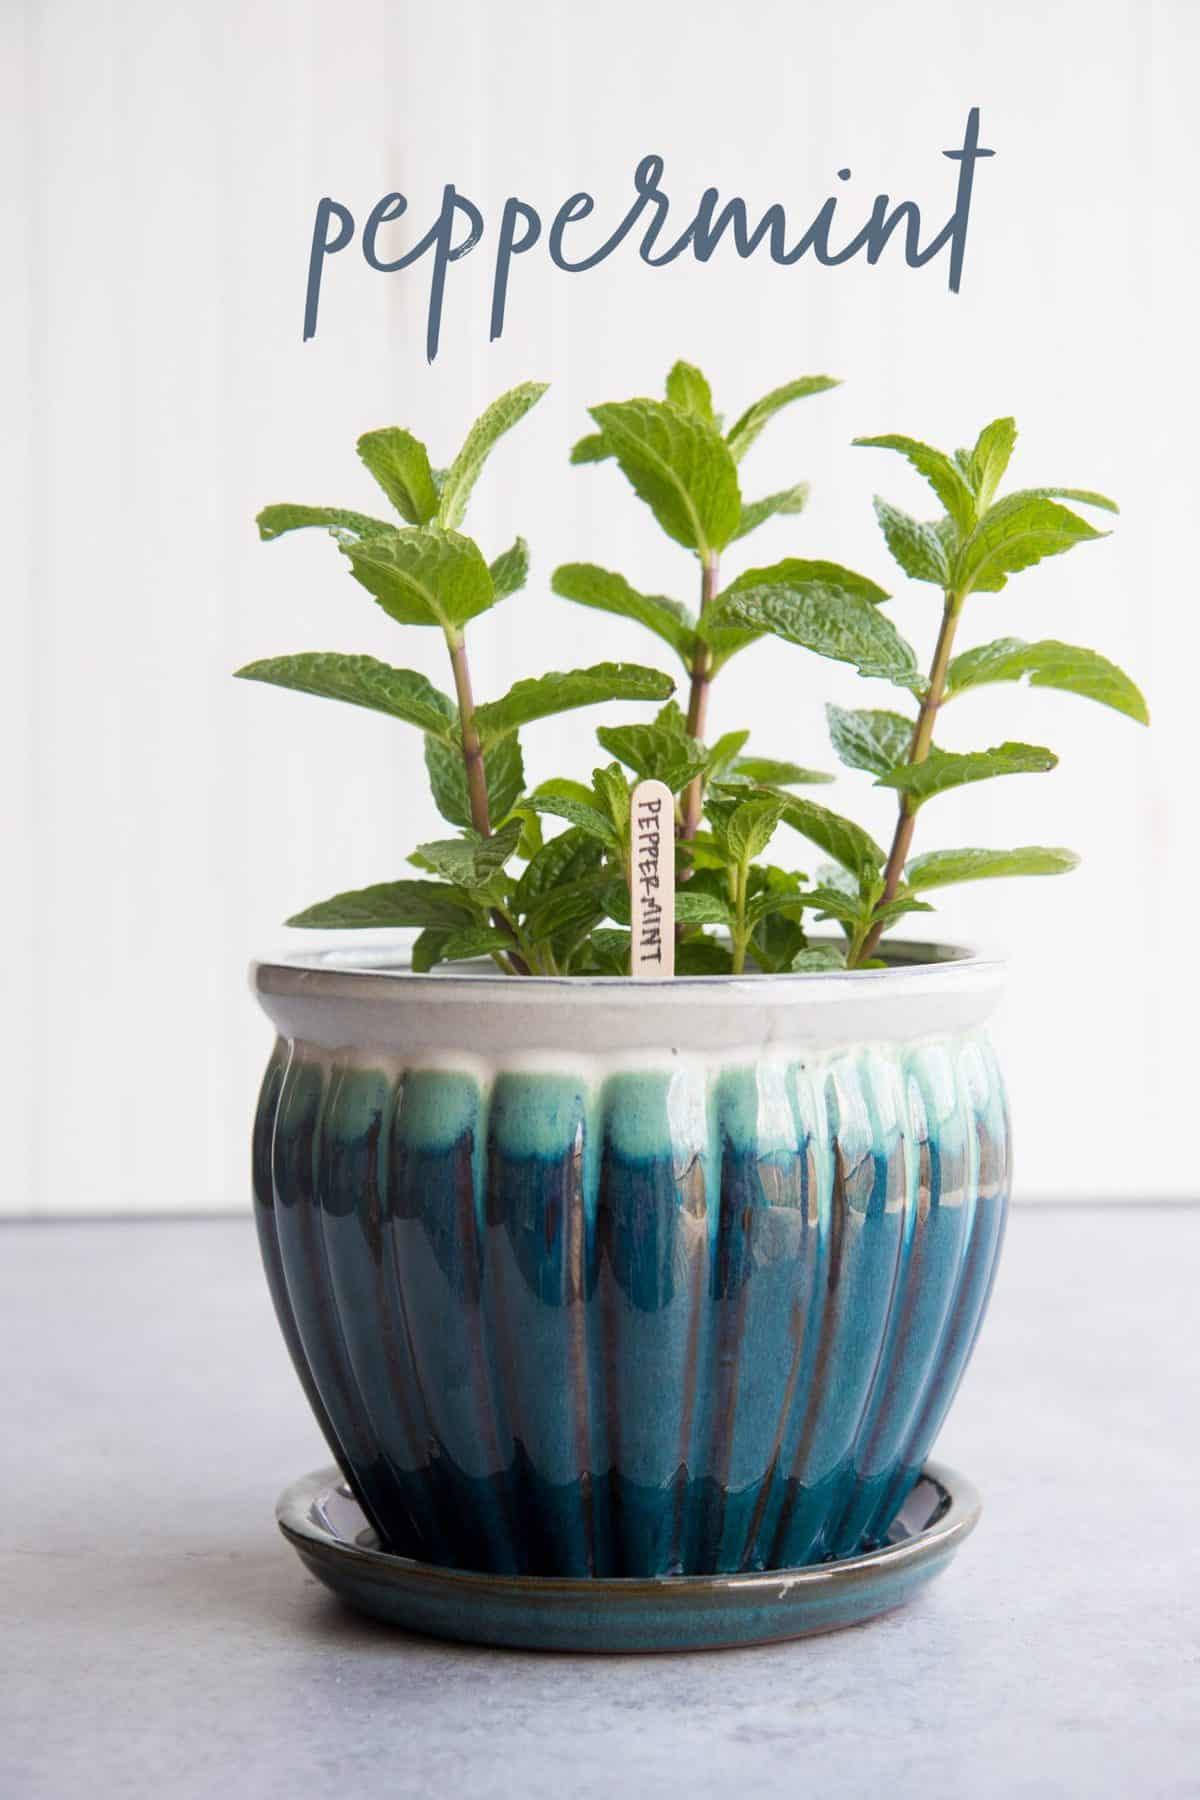 Peppermint in a blue and white flowerpot, with a text overlay